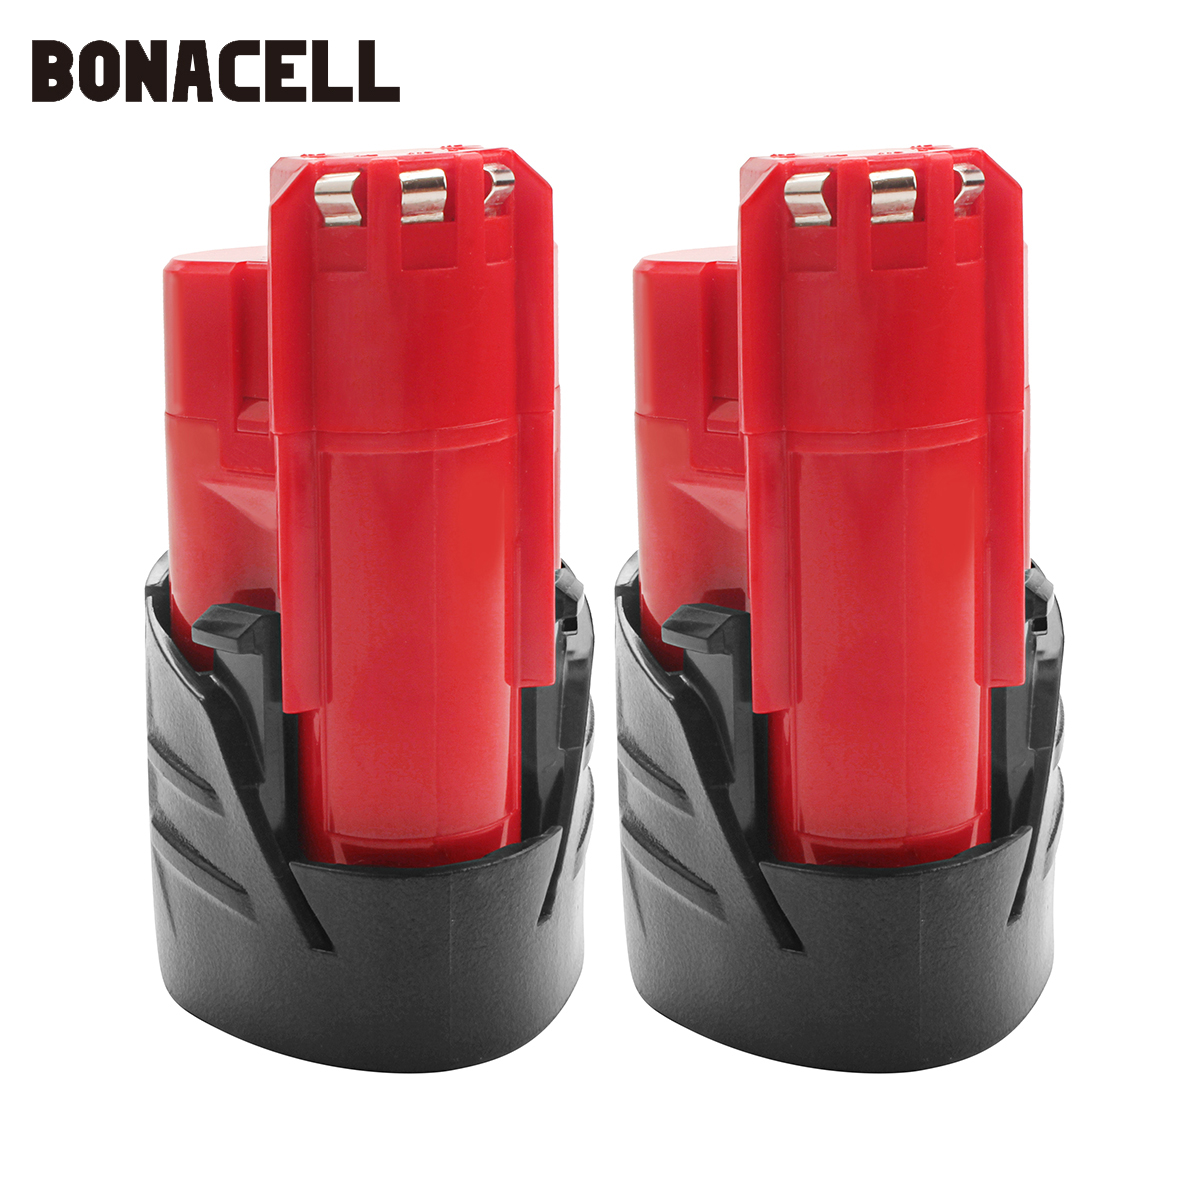 Bonacell 12V 2000mAh LI ION battery Rechargeable Power Tool Battery For Milwaukee M12 48 11 2401 48 11 2440 L10 in Replacement Batteries from Consumer Electronics